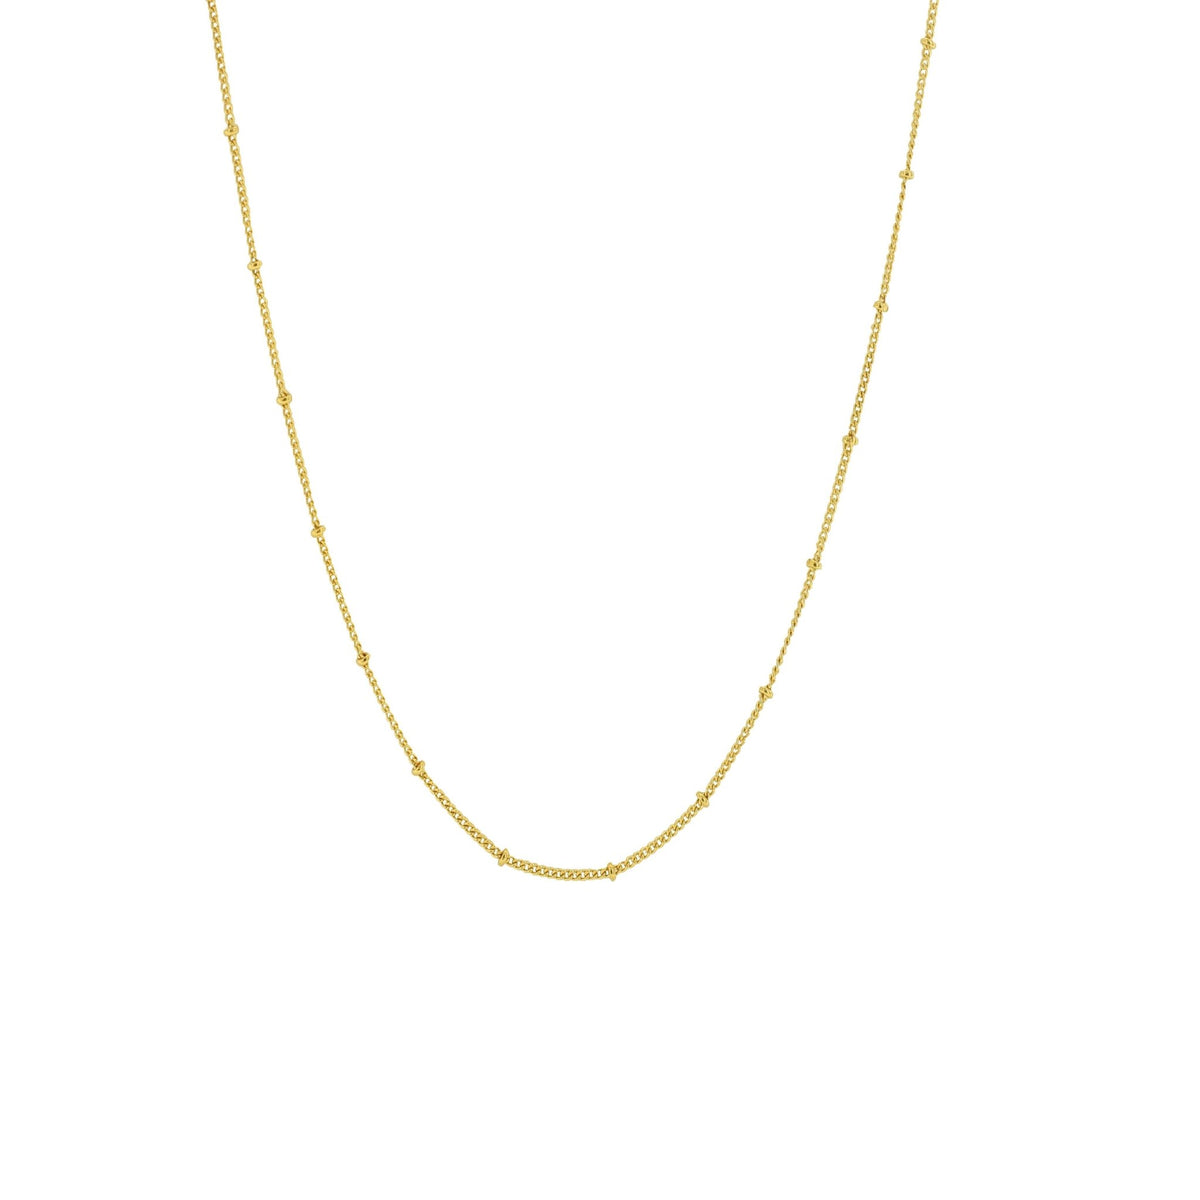 "CHARMING 22-24"" BEADED NECKLACE GOLD- PREORDER - SO PRETTY CARA COTTER"